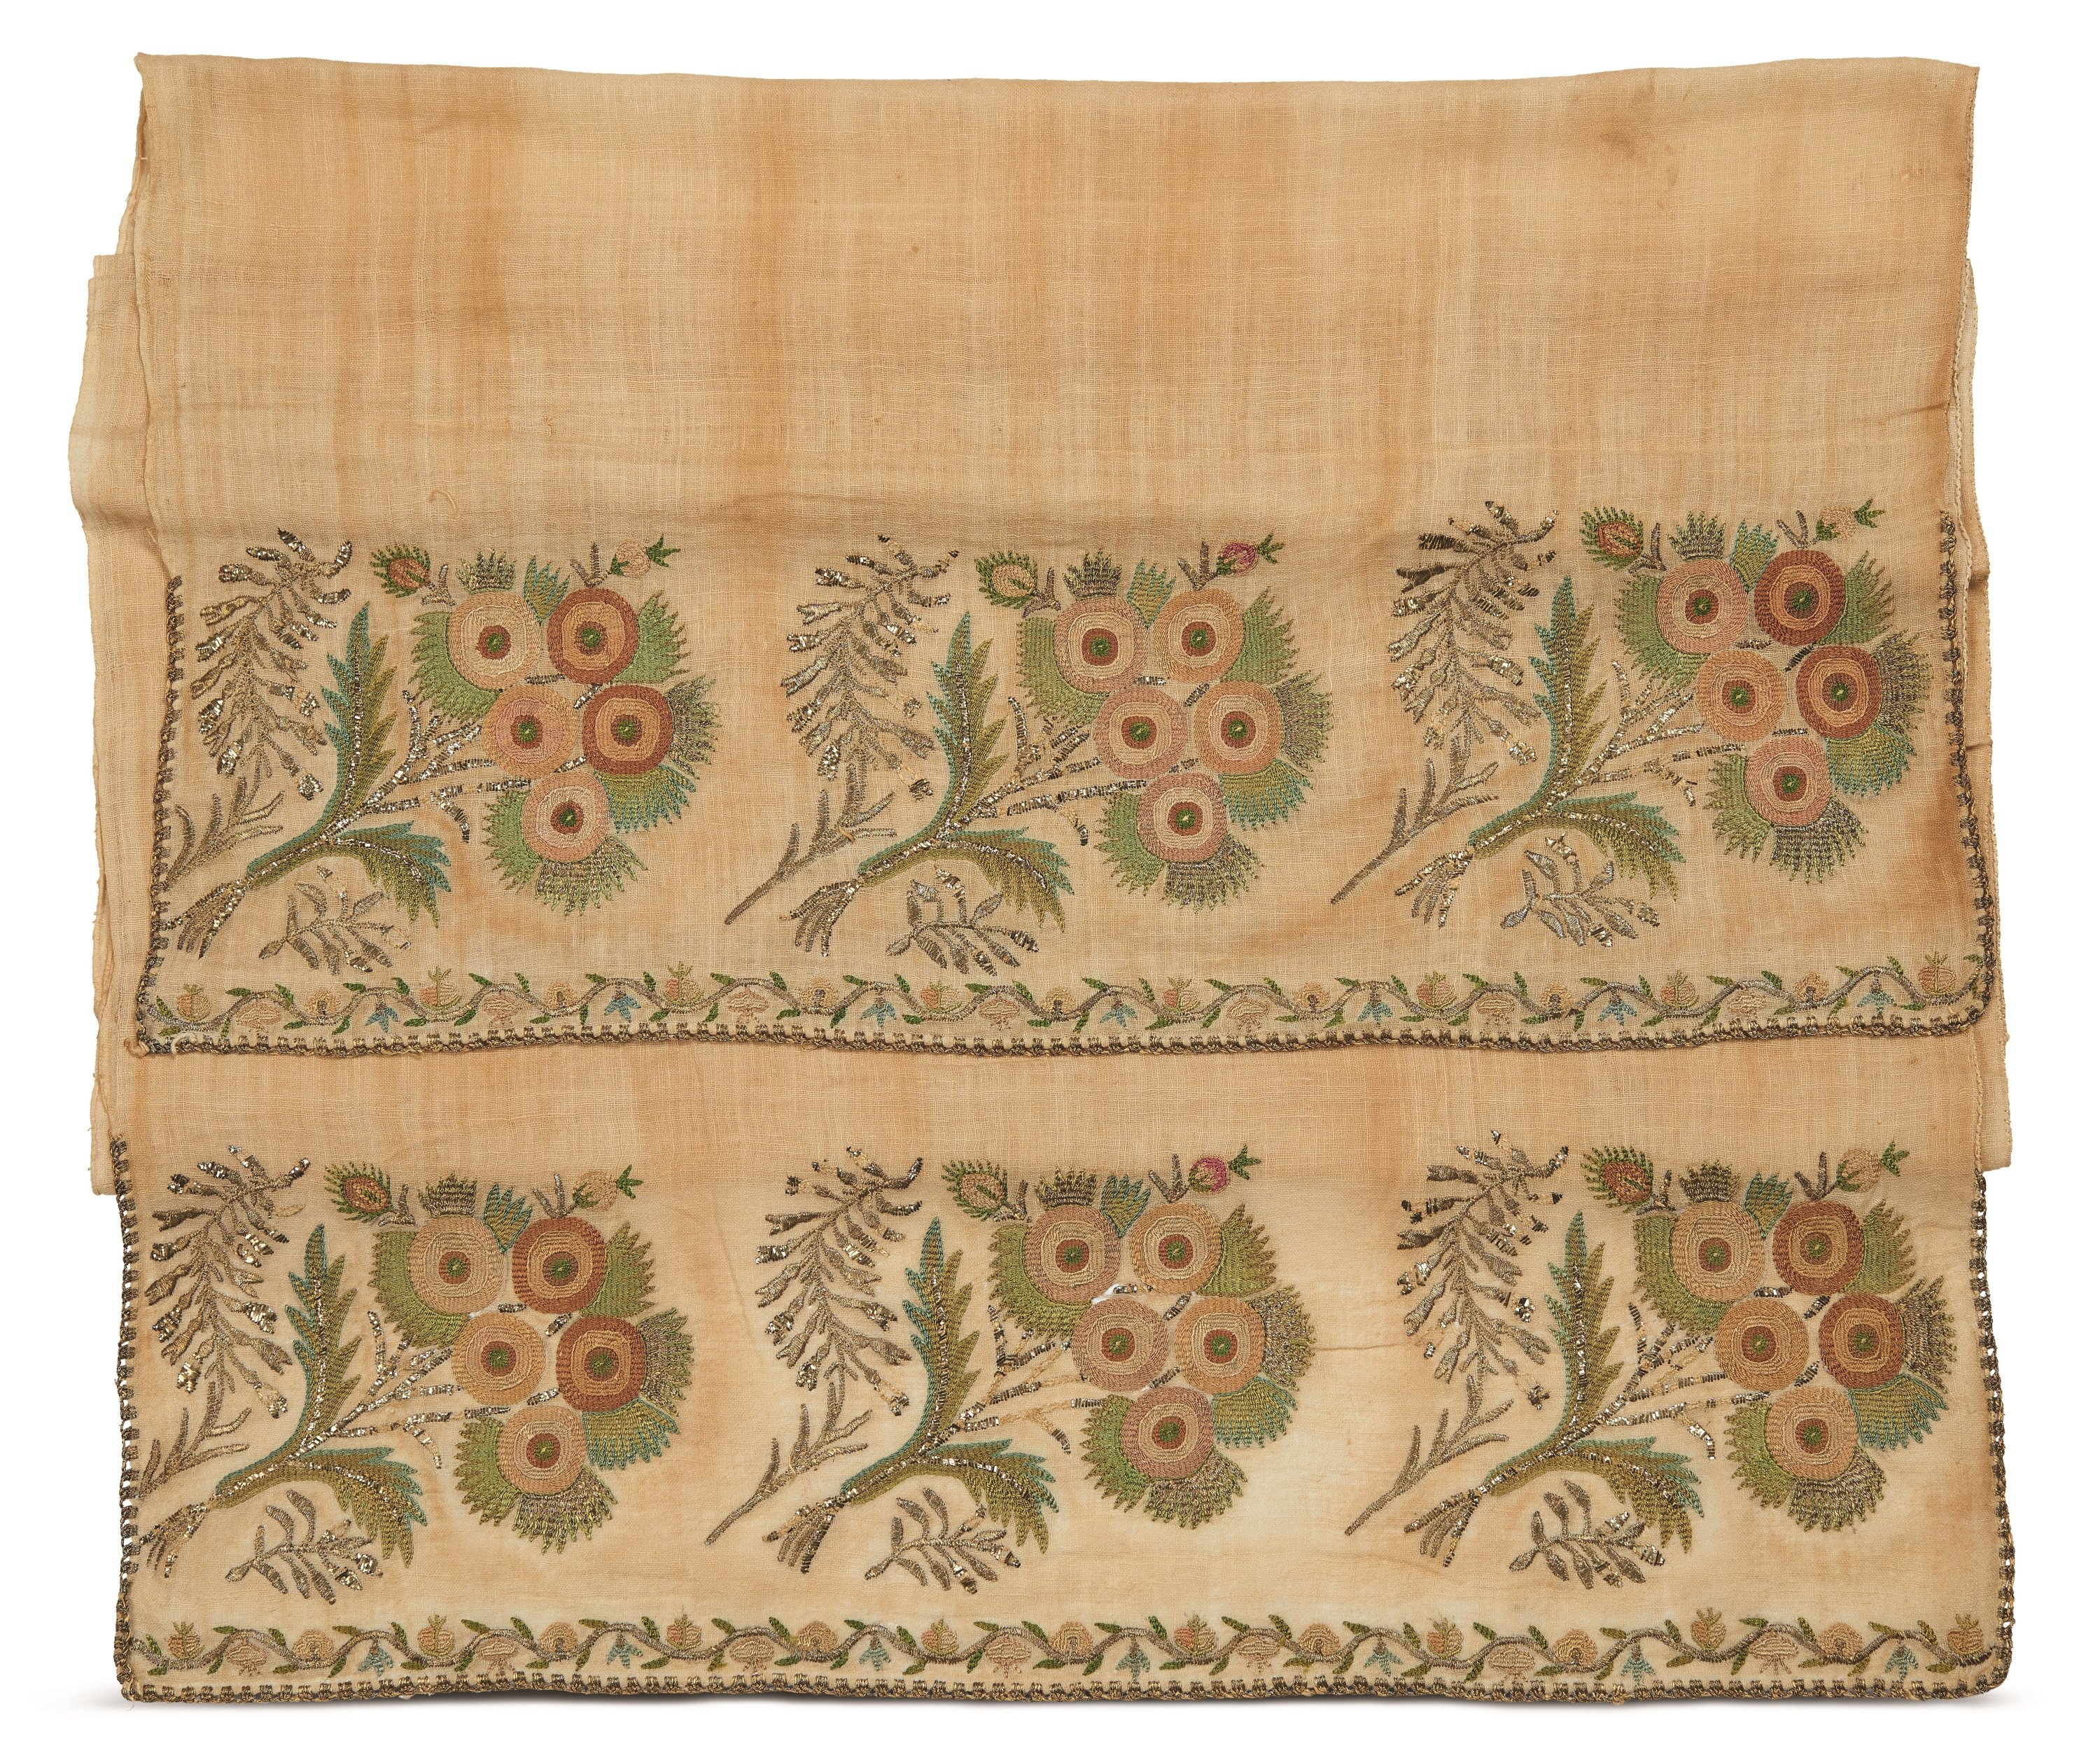 A napkin from the 19th-century Ottoman period.